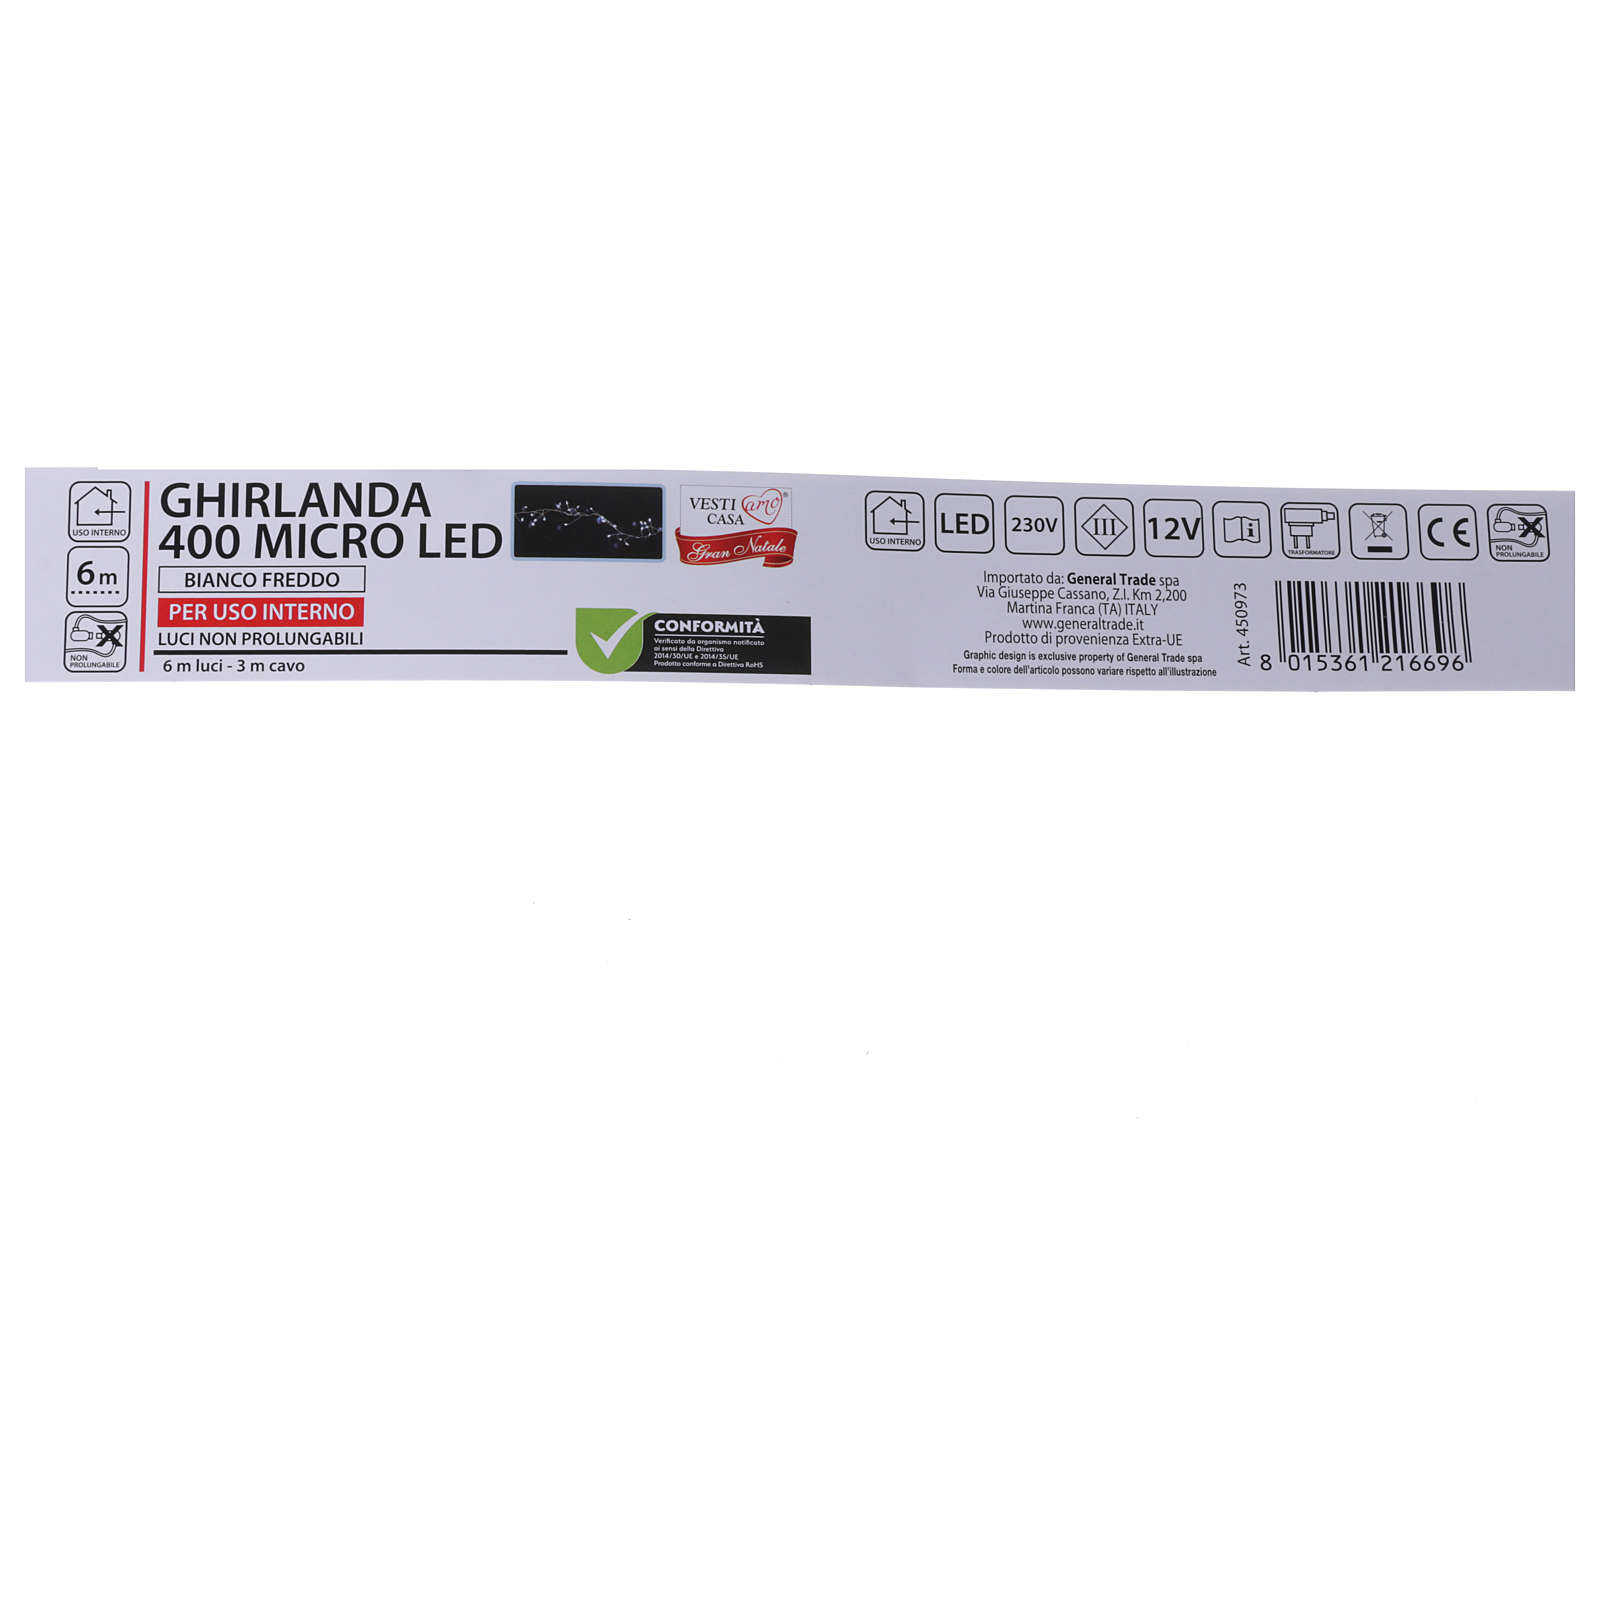 Illuminated garland 400 micro LEDs cold white for internal use electric power 3